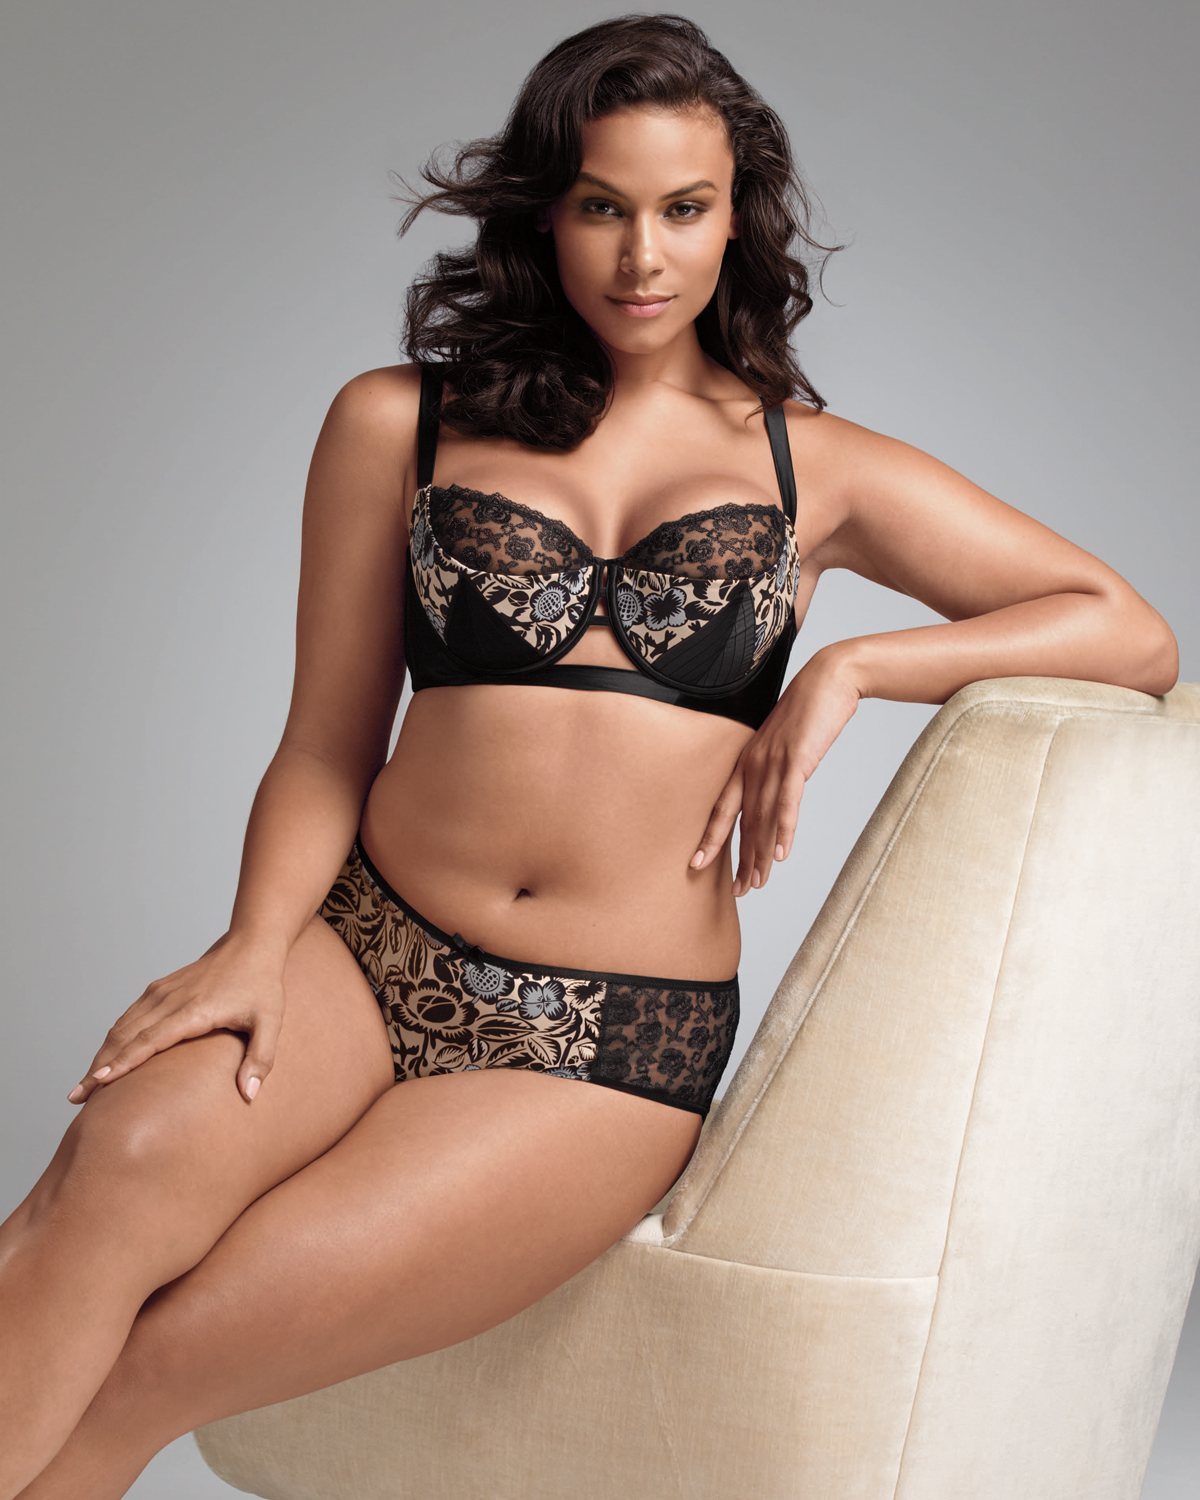 Beyond Plus Size Lingerie for Curvy Women. Of course, Three Wishes stocks much more than simply lingerie, and all of it is designed exclusively for your body type. If you're looking for something more exotic, you should take a look at our plus size costumes page.